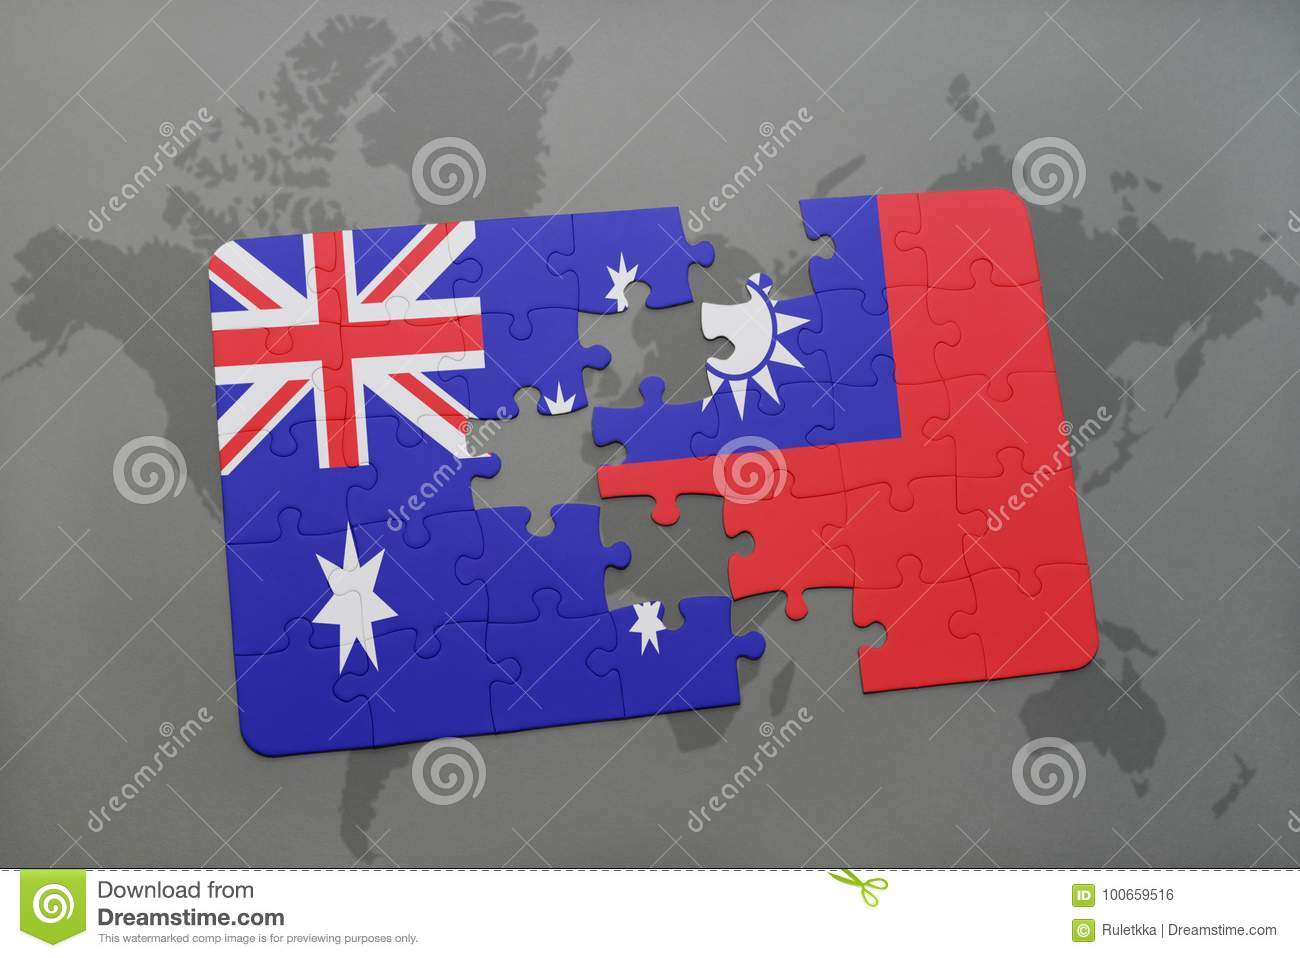 Taiwan On A World Map.Puzzle With The National Flag Of Australia And Taiwan On A World Map